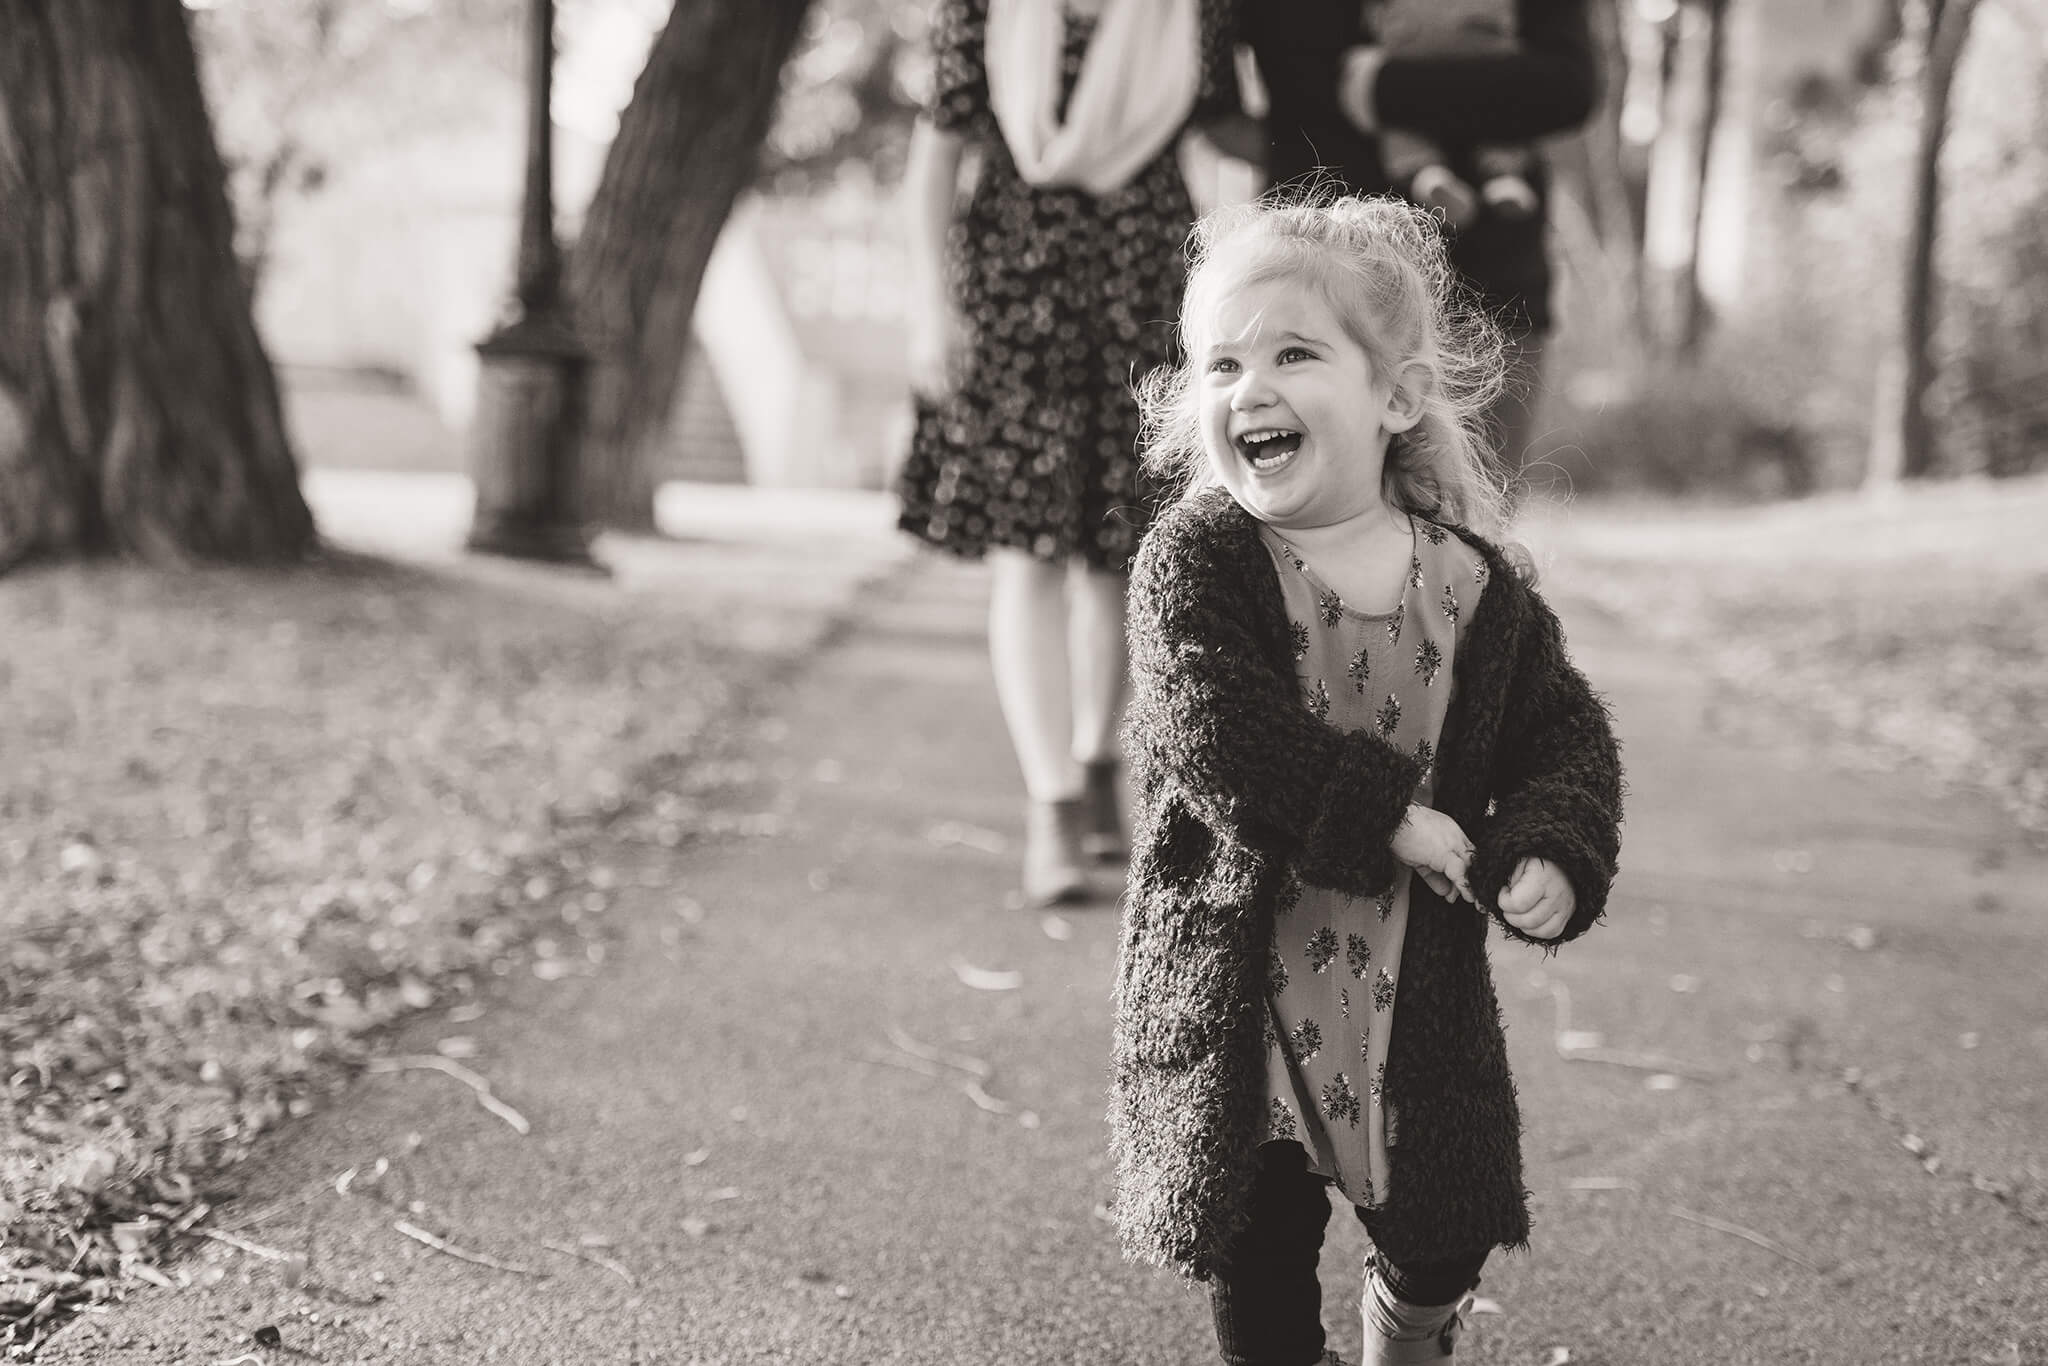 Little girl smiling in large sweater